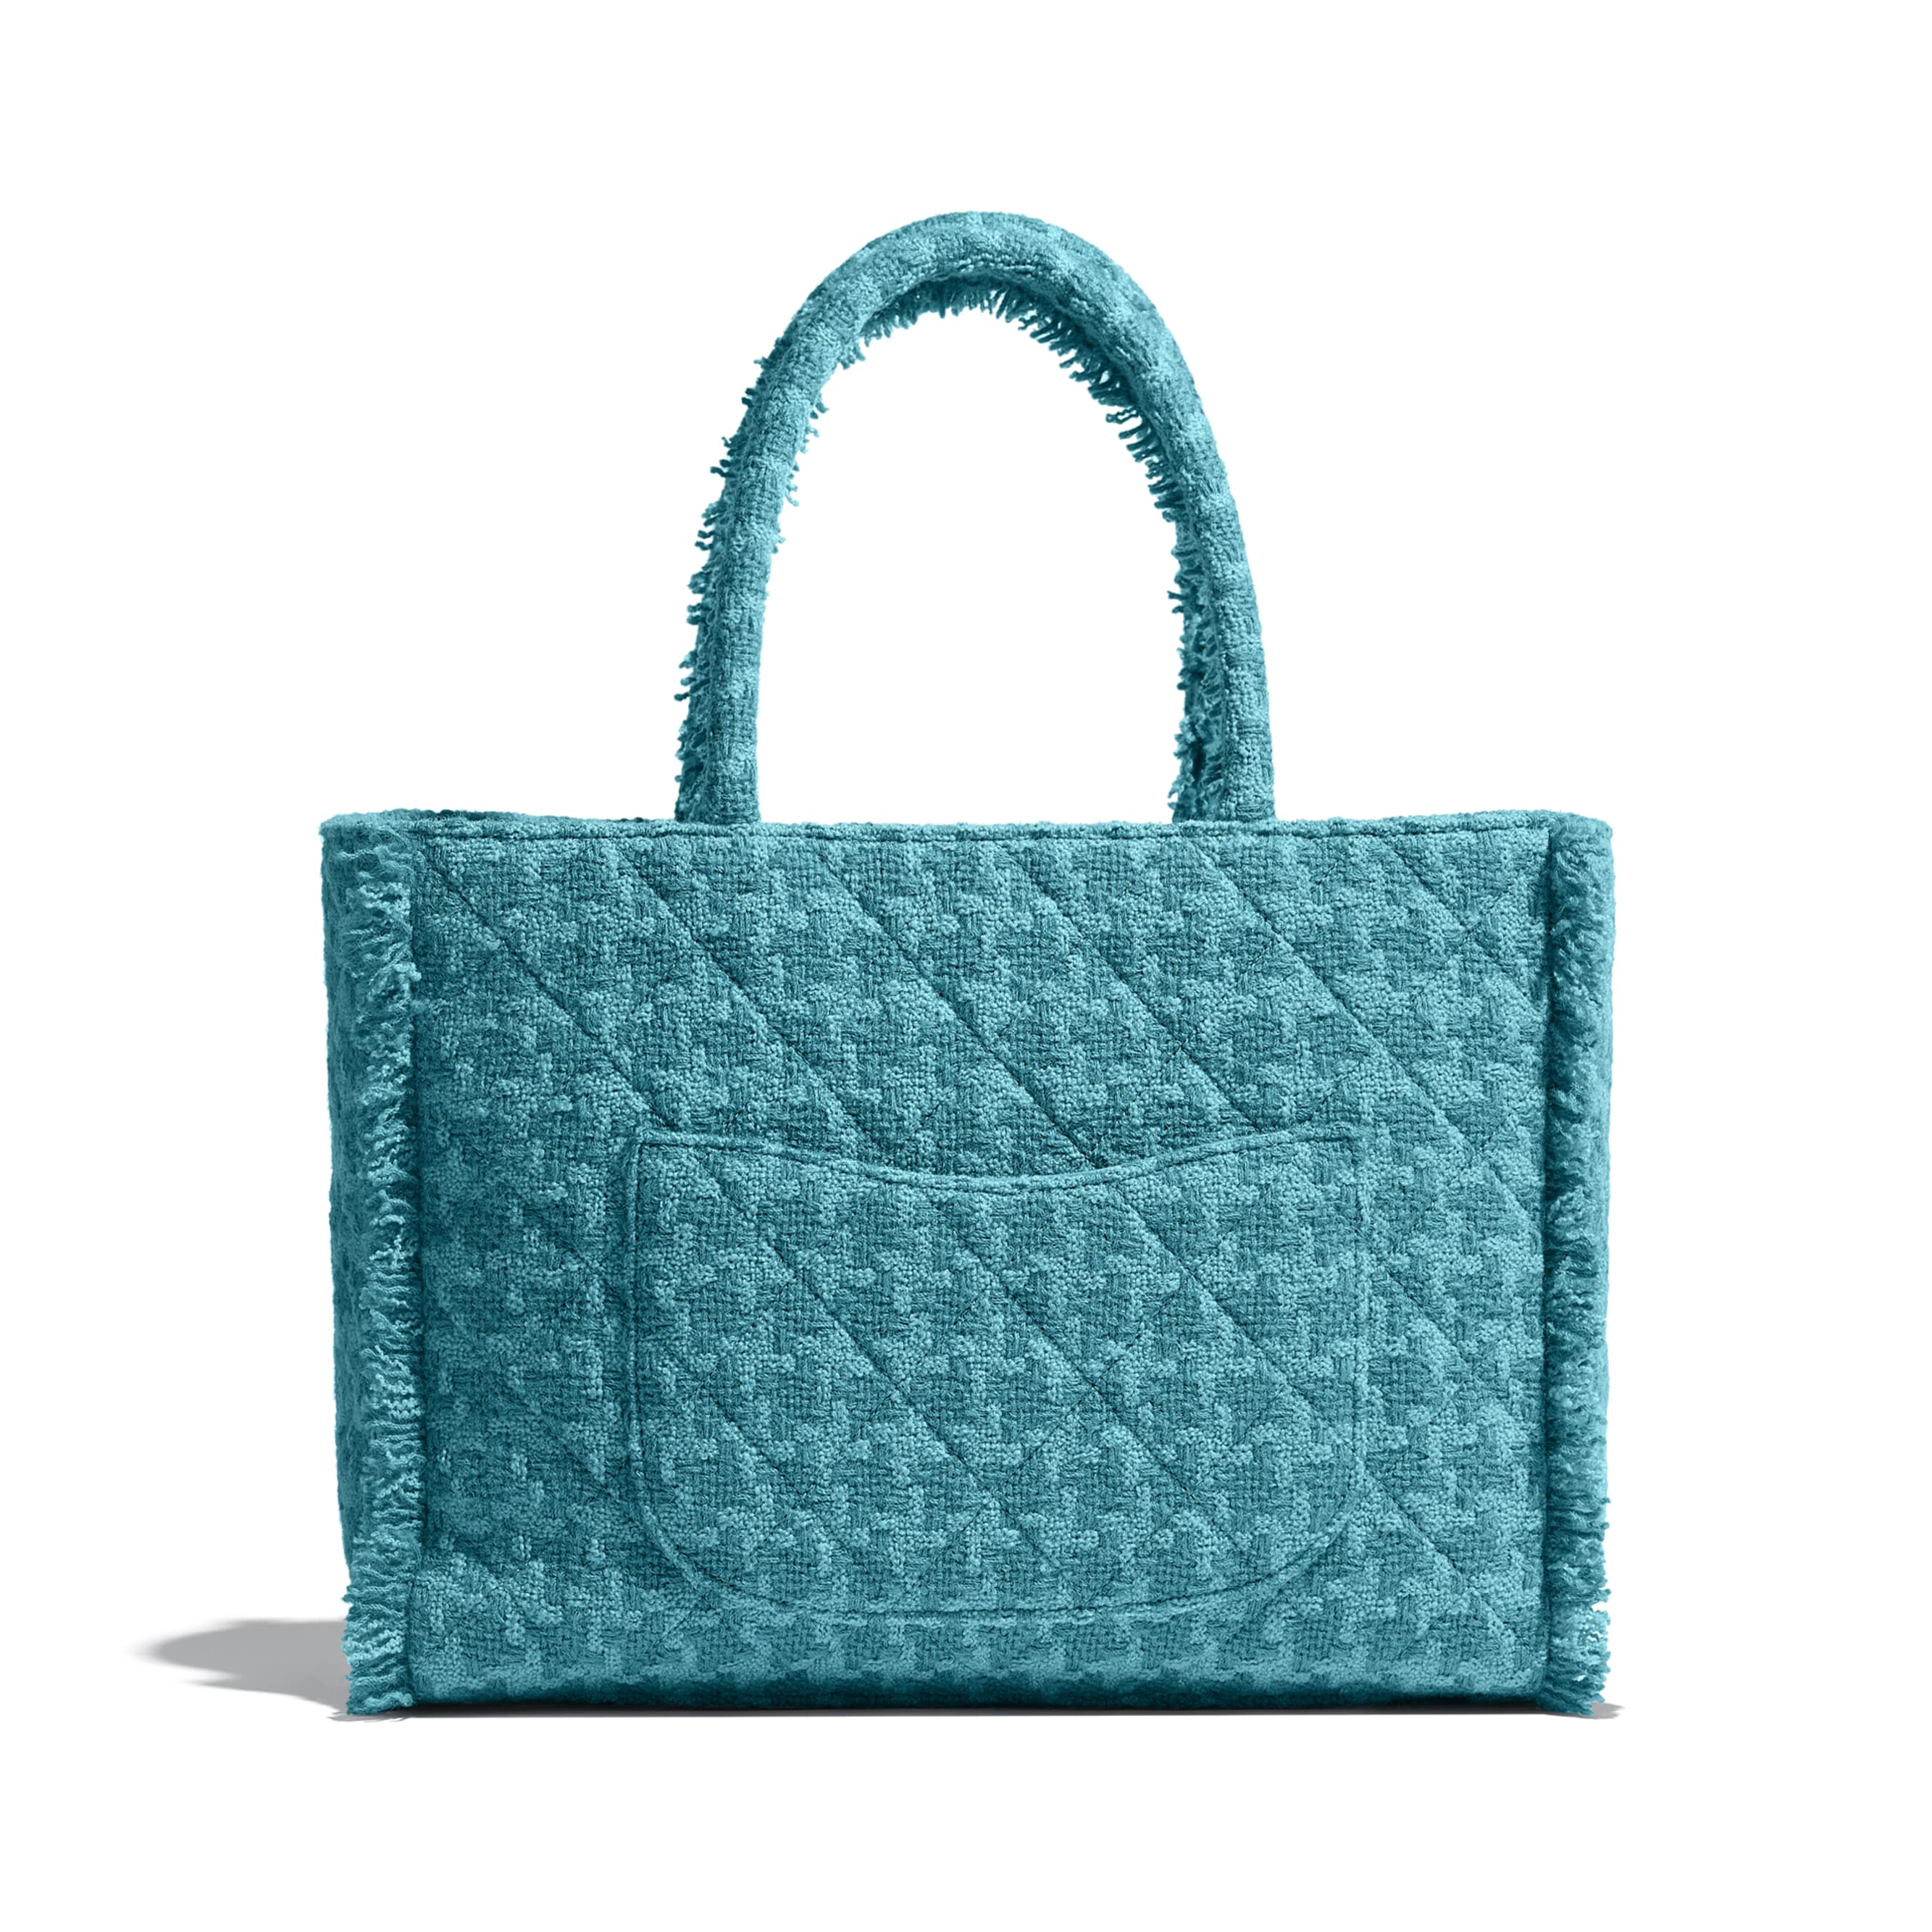 Zipped Shopping Bag - Turquoise - Wool Tweed & Gold-Tone Metal - Alternative view - see standard sized version